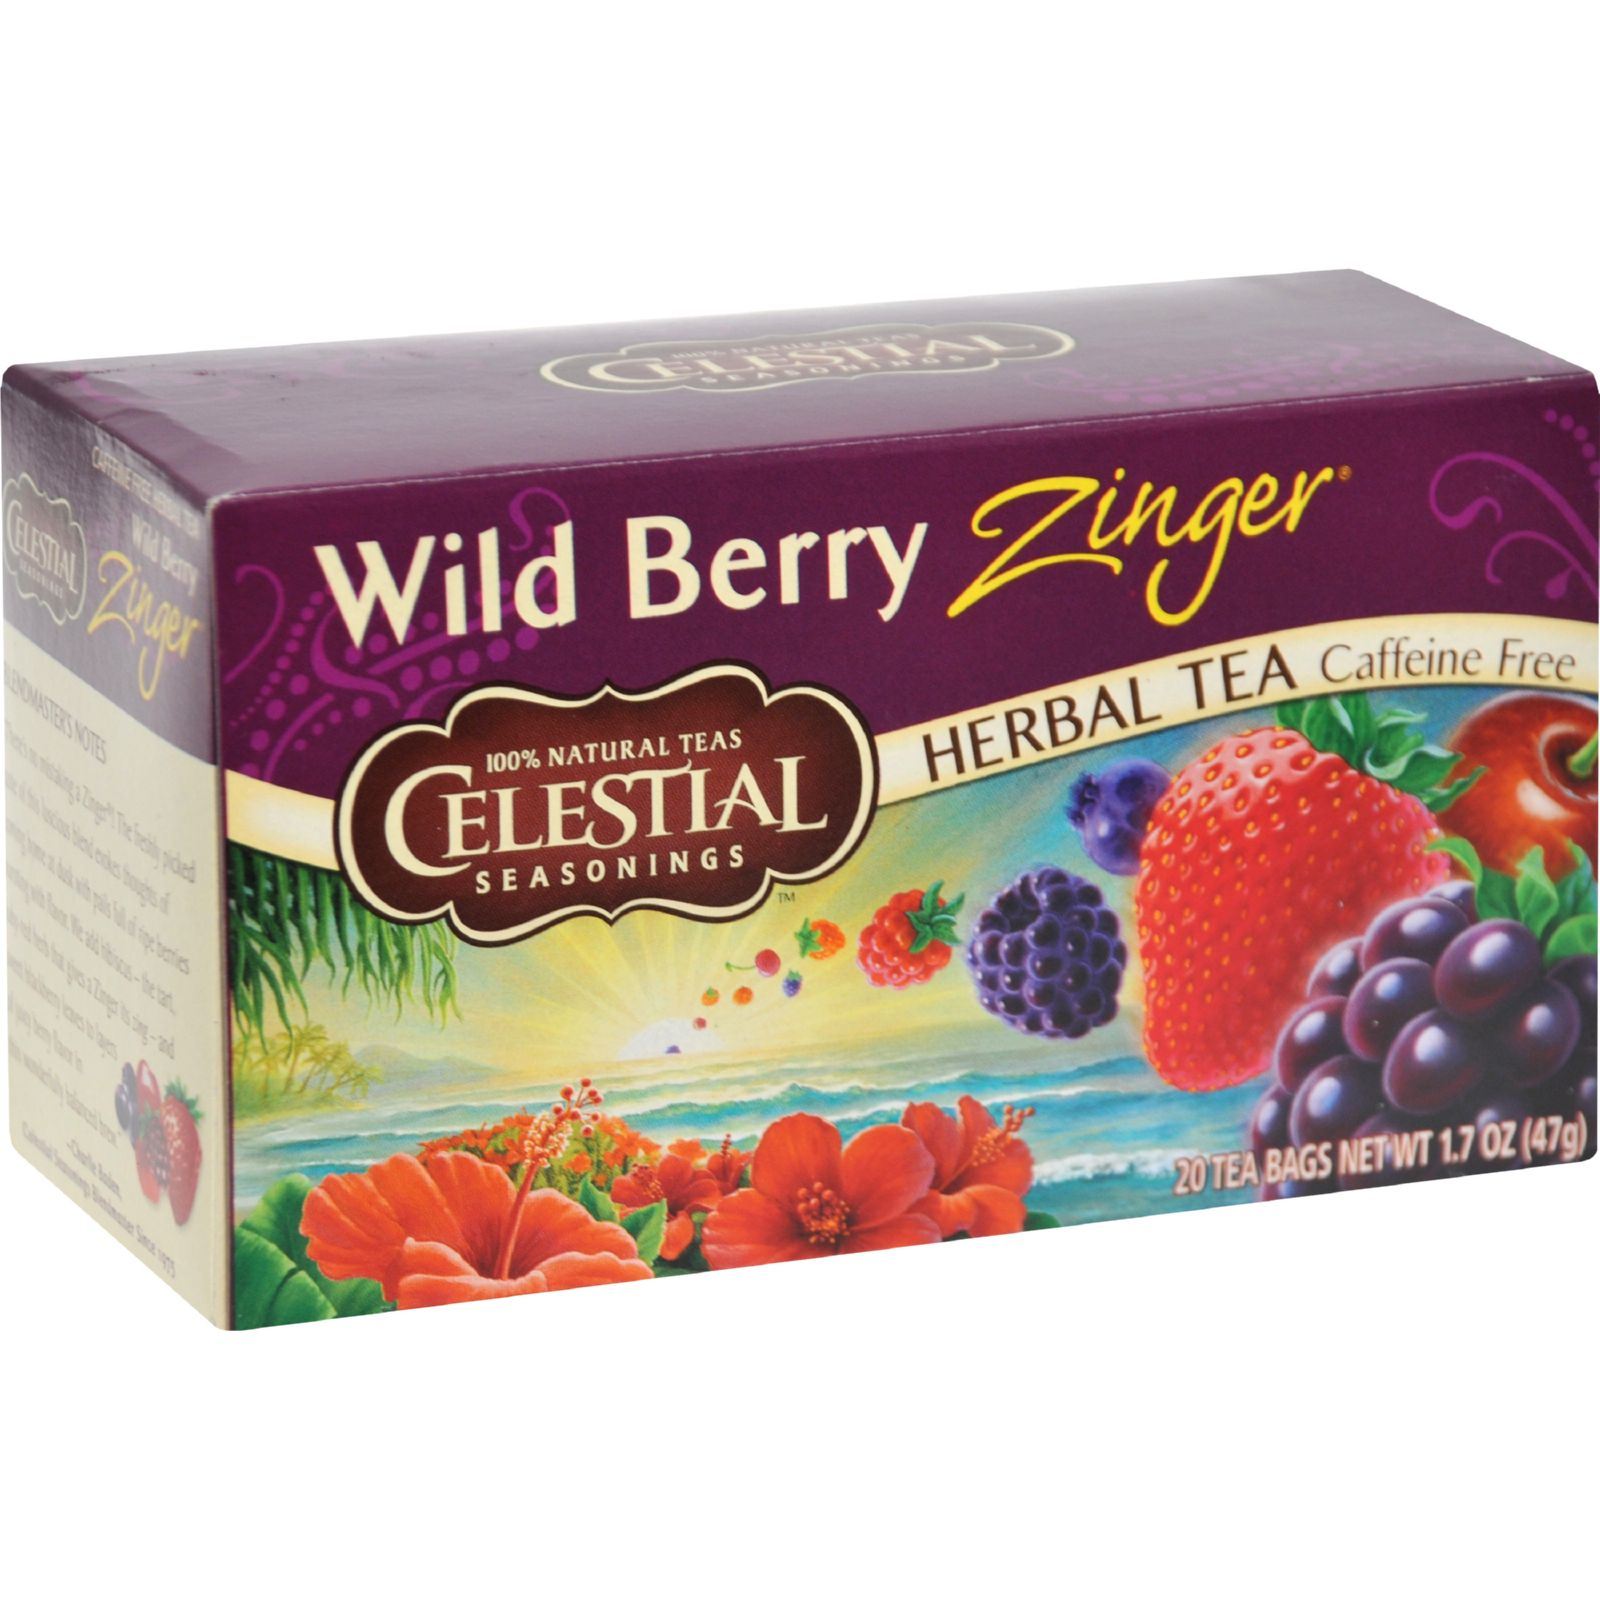 Celestial Seasonings Herb Tea Wild Berry Zinger - 20 Tea Bags - (Case of 6)